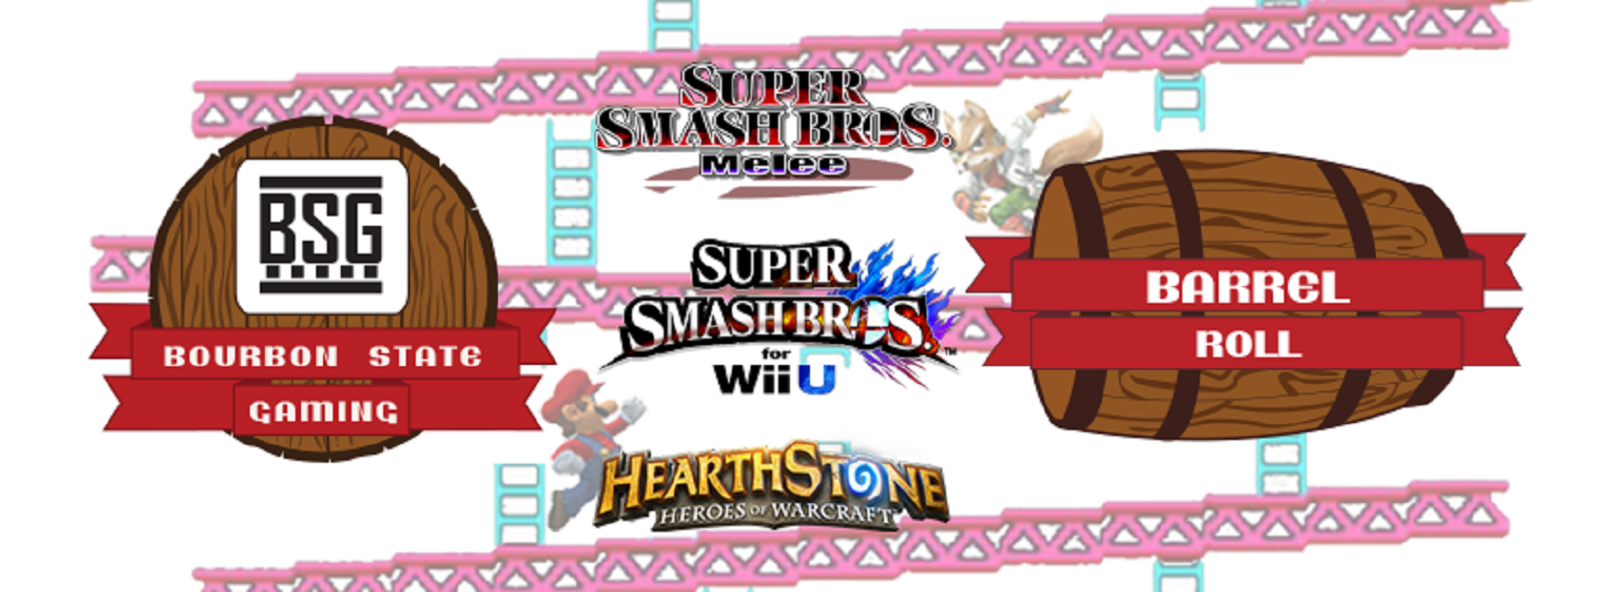 Smash Tour: May 12-14 ~ Royal Flush, The Dawg Pound 2, and more! - n3rdabl3